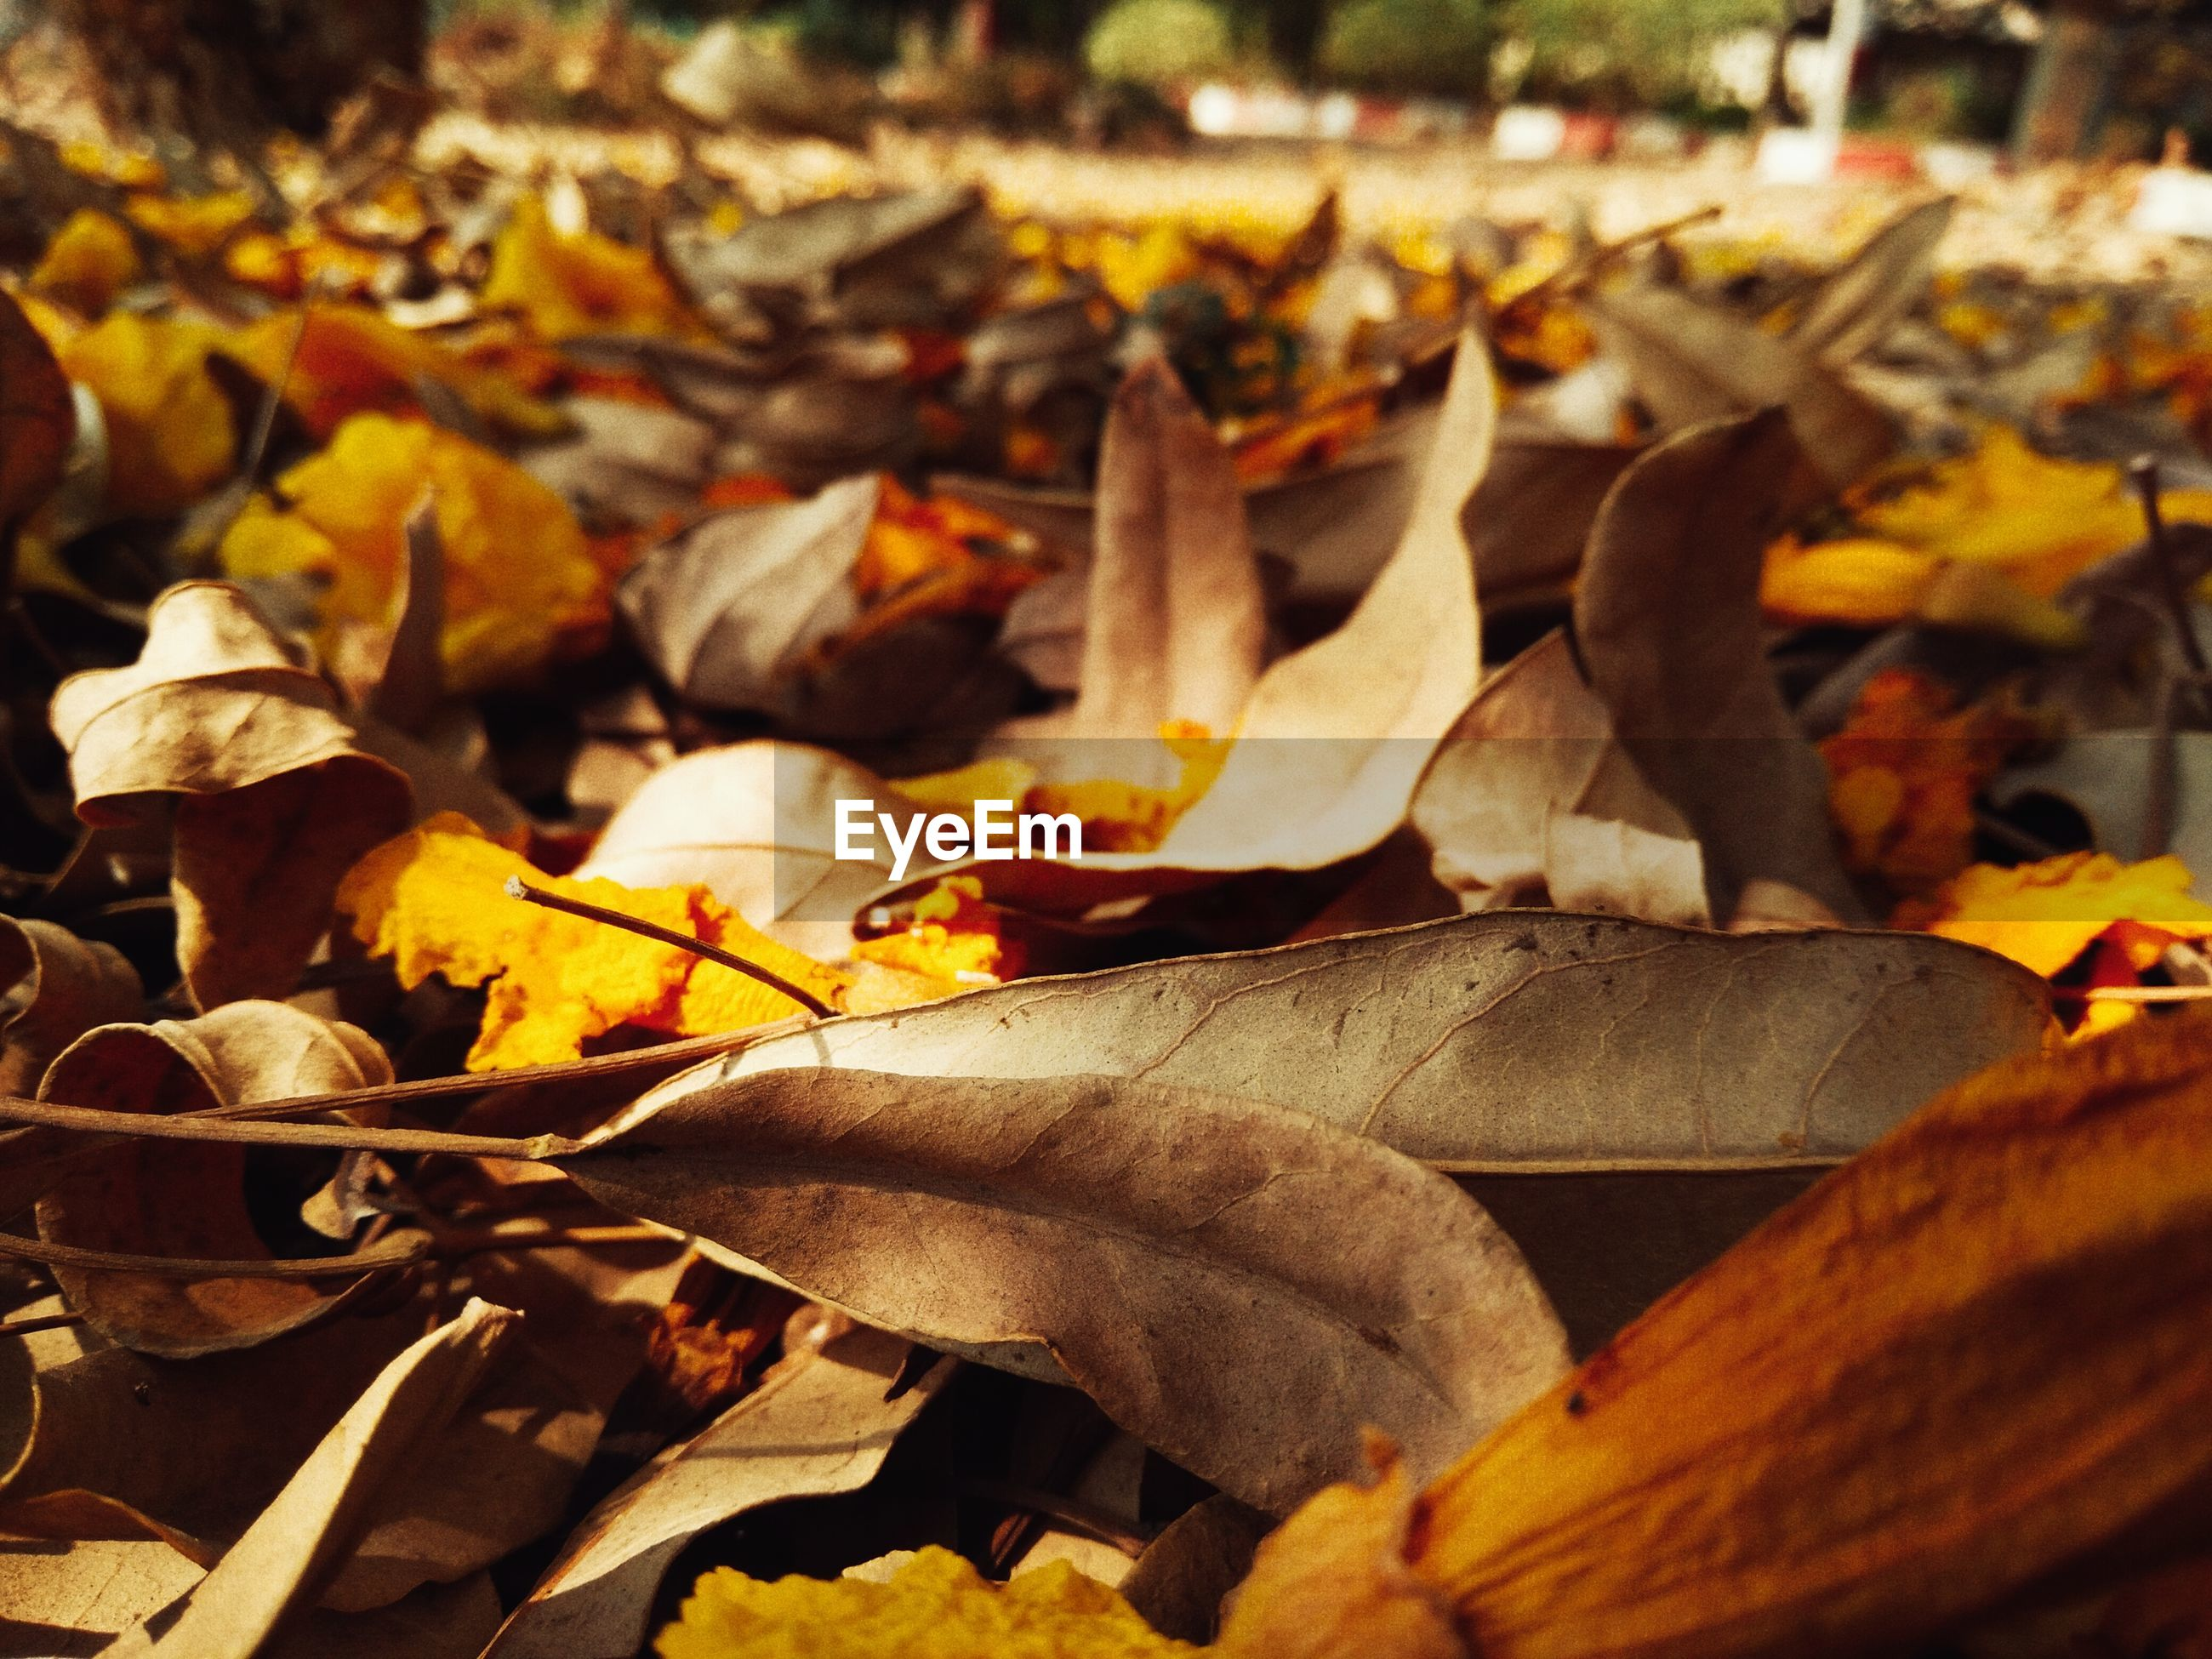 autumn, dry, change, focus on foreground, selective focus, leaf, leaves, season, yellow, abundance, close-up, large group of objects, fallen, outdoors, day, nature, sunlight, no people, field, wood - material